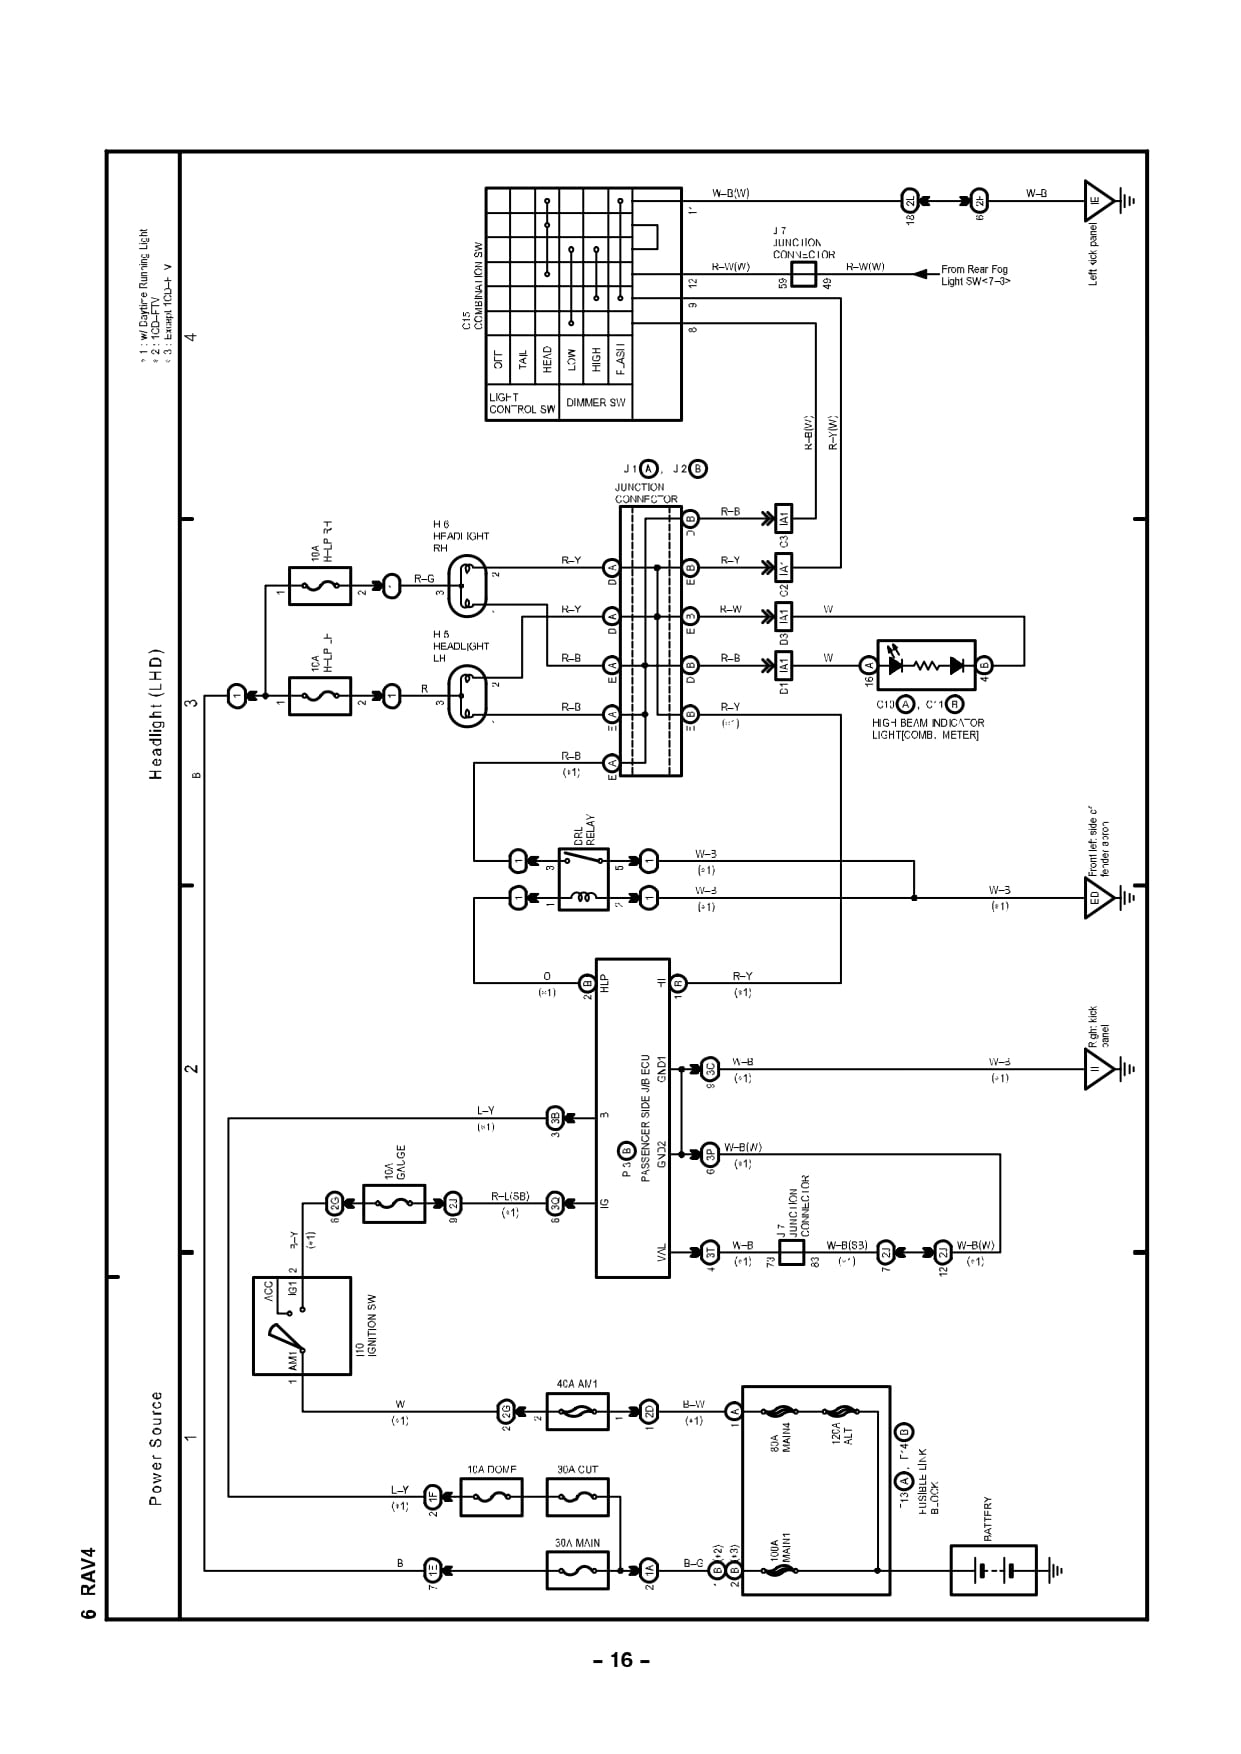 [DIAGRAM] 2013 Rav4 Wiring Diagram FULL Version HD Quality